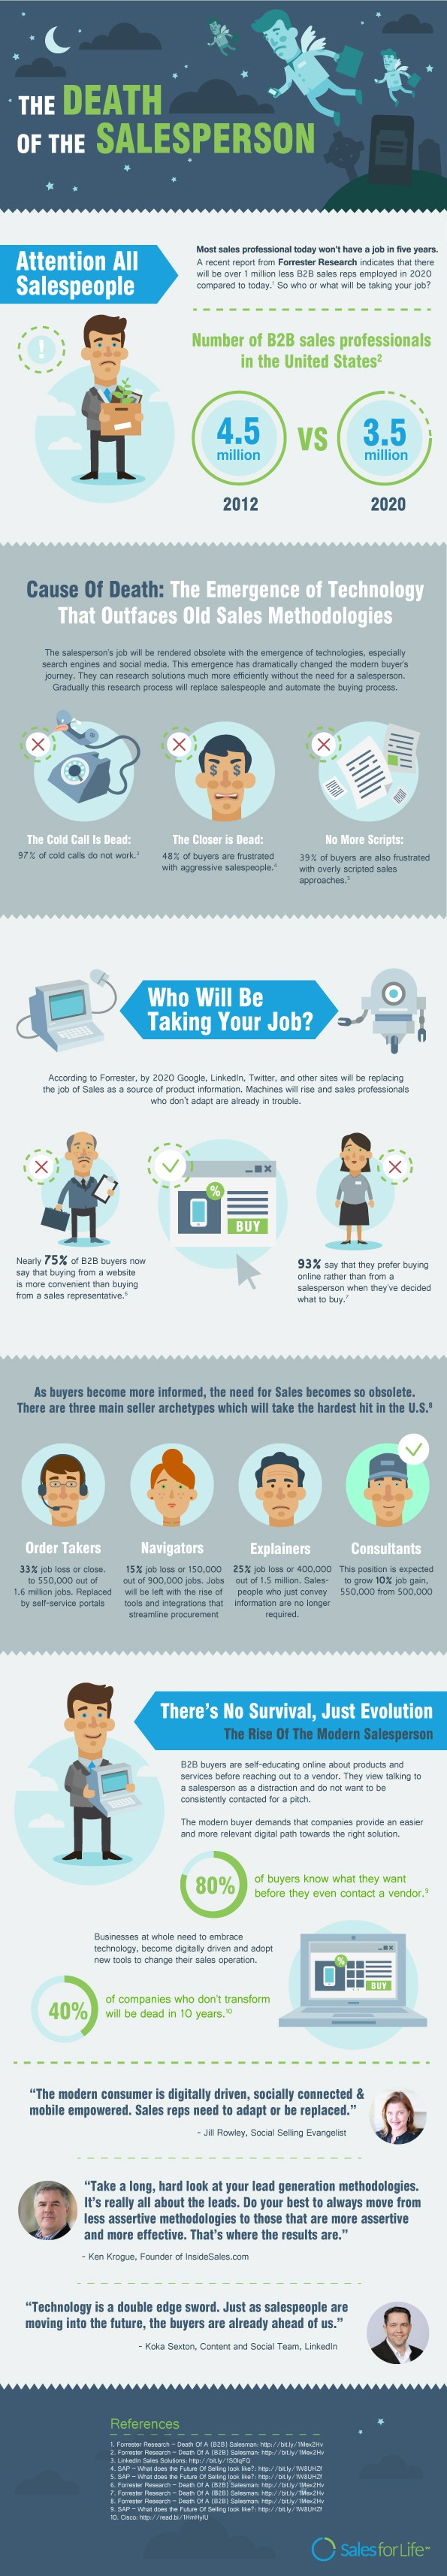 The Death Of The B2B Salesperson #infographic